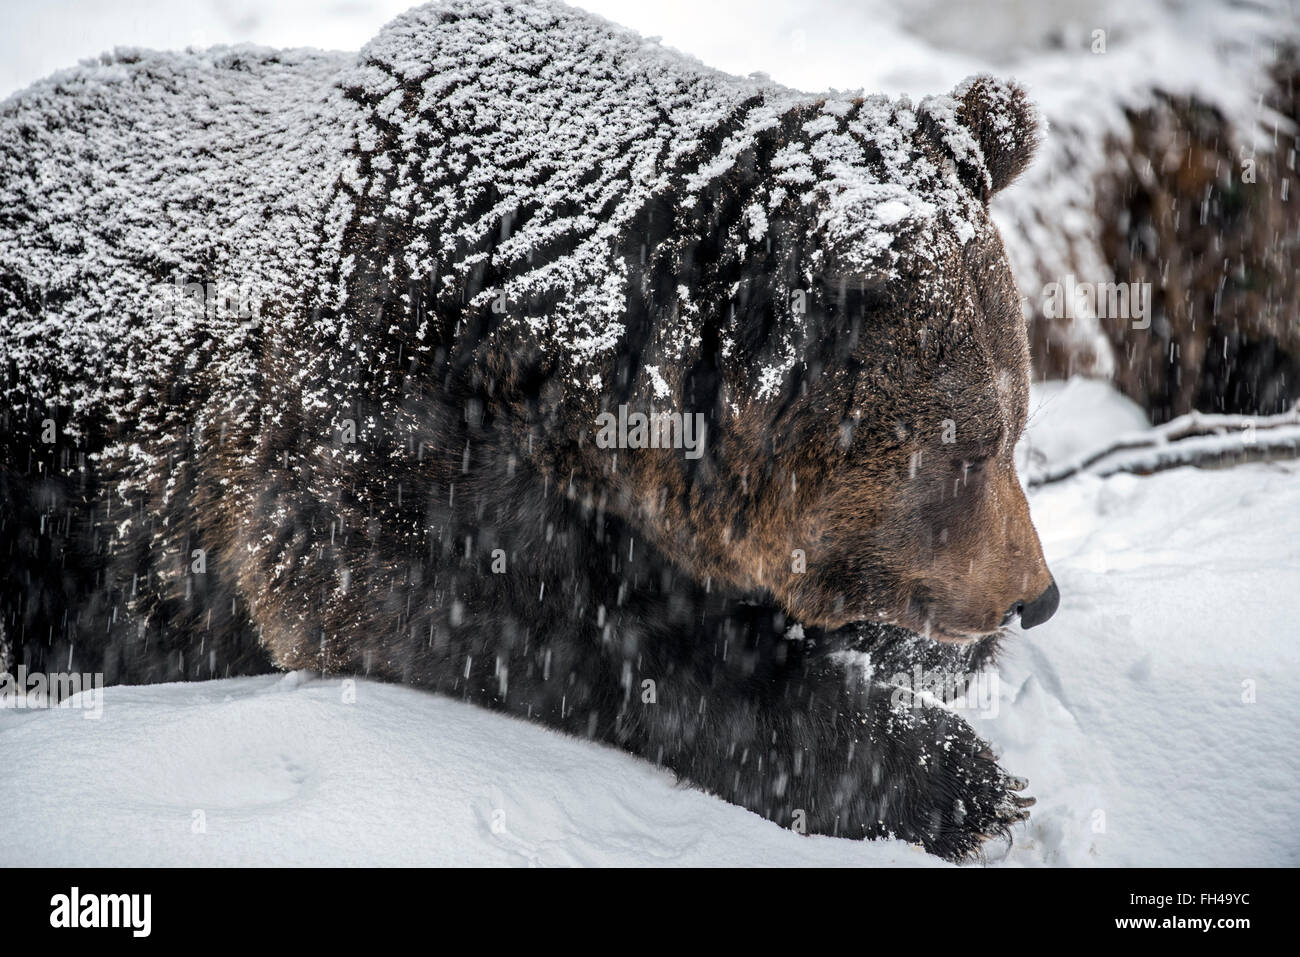 Close up of brown bear (Ursus arctos) lying at entrance of den during snow shower in winter / autumn - Stock Image